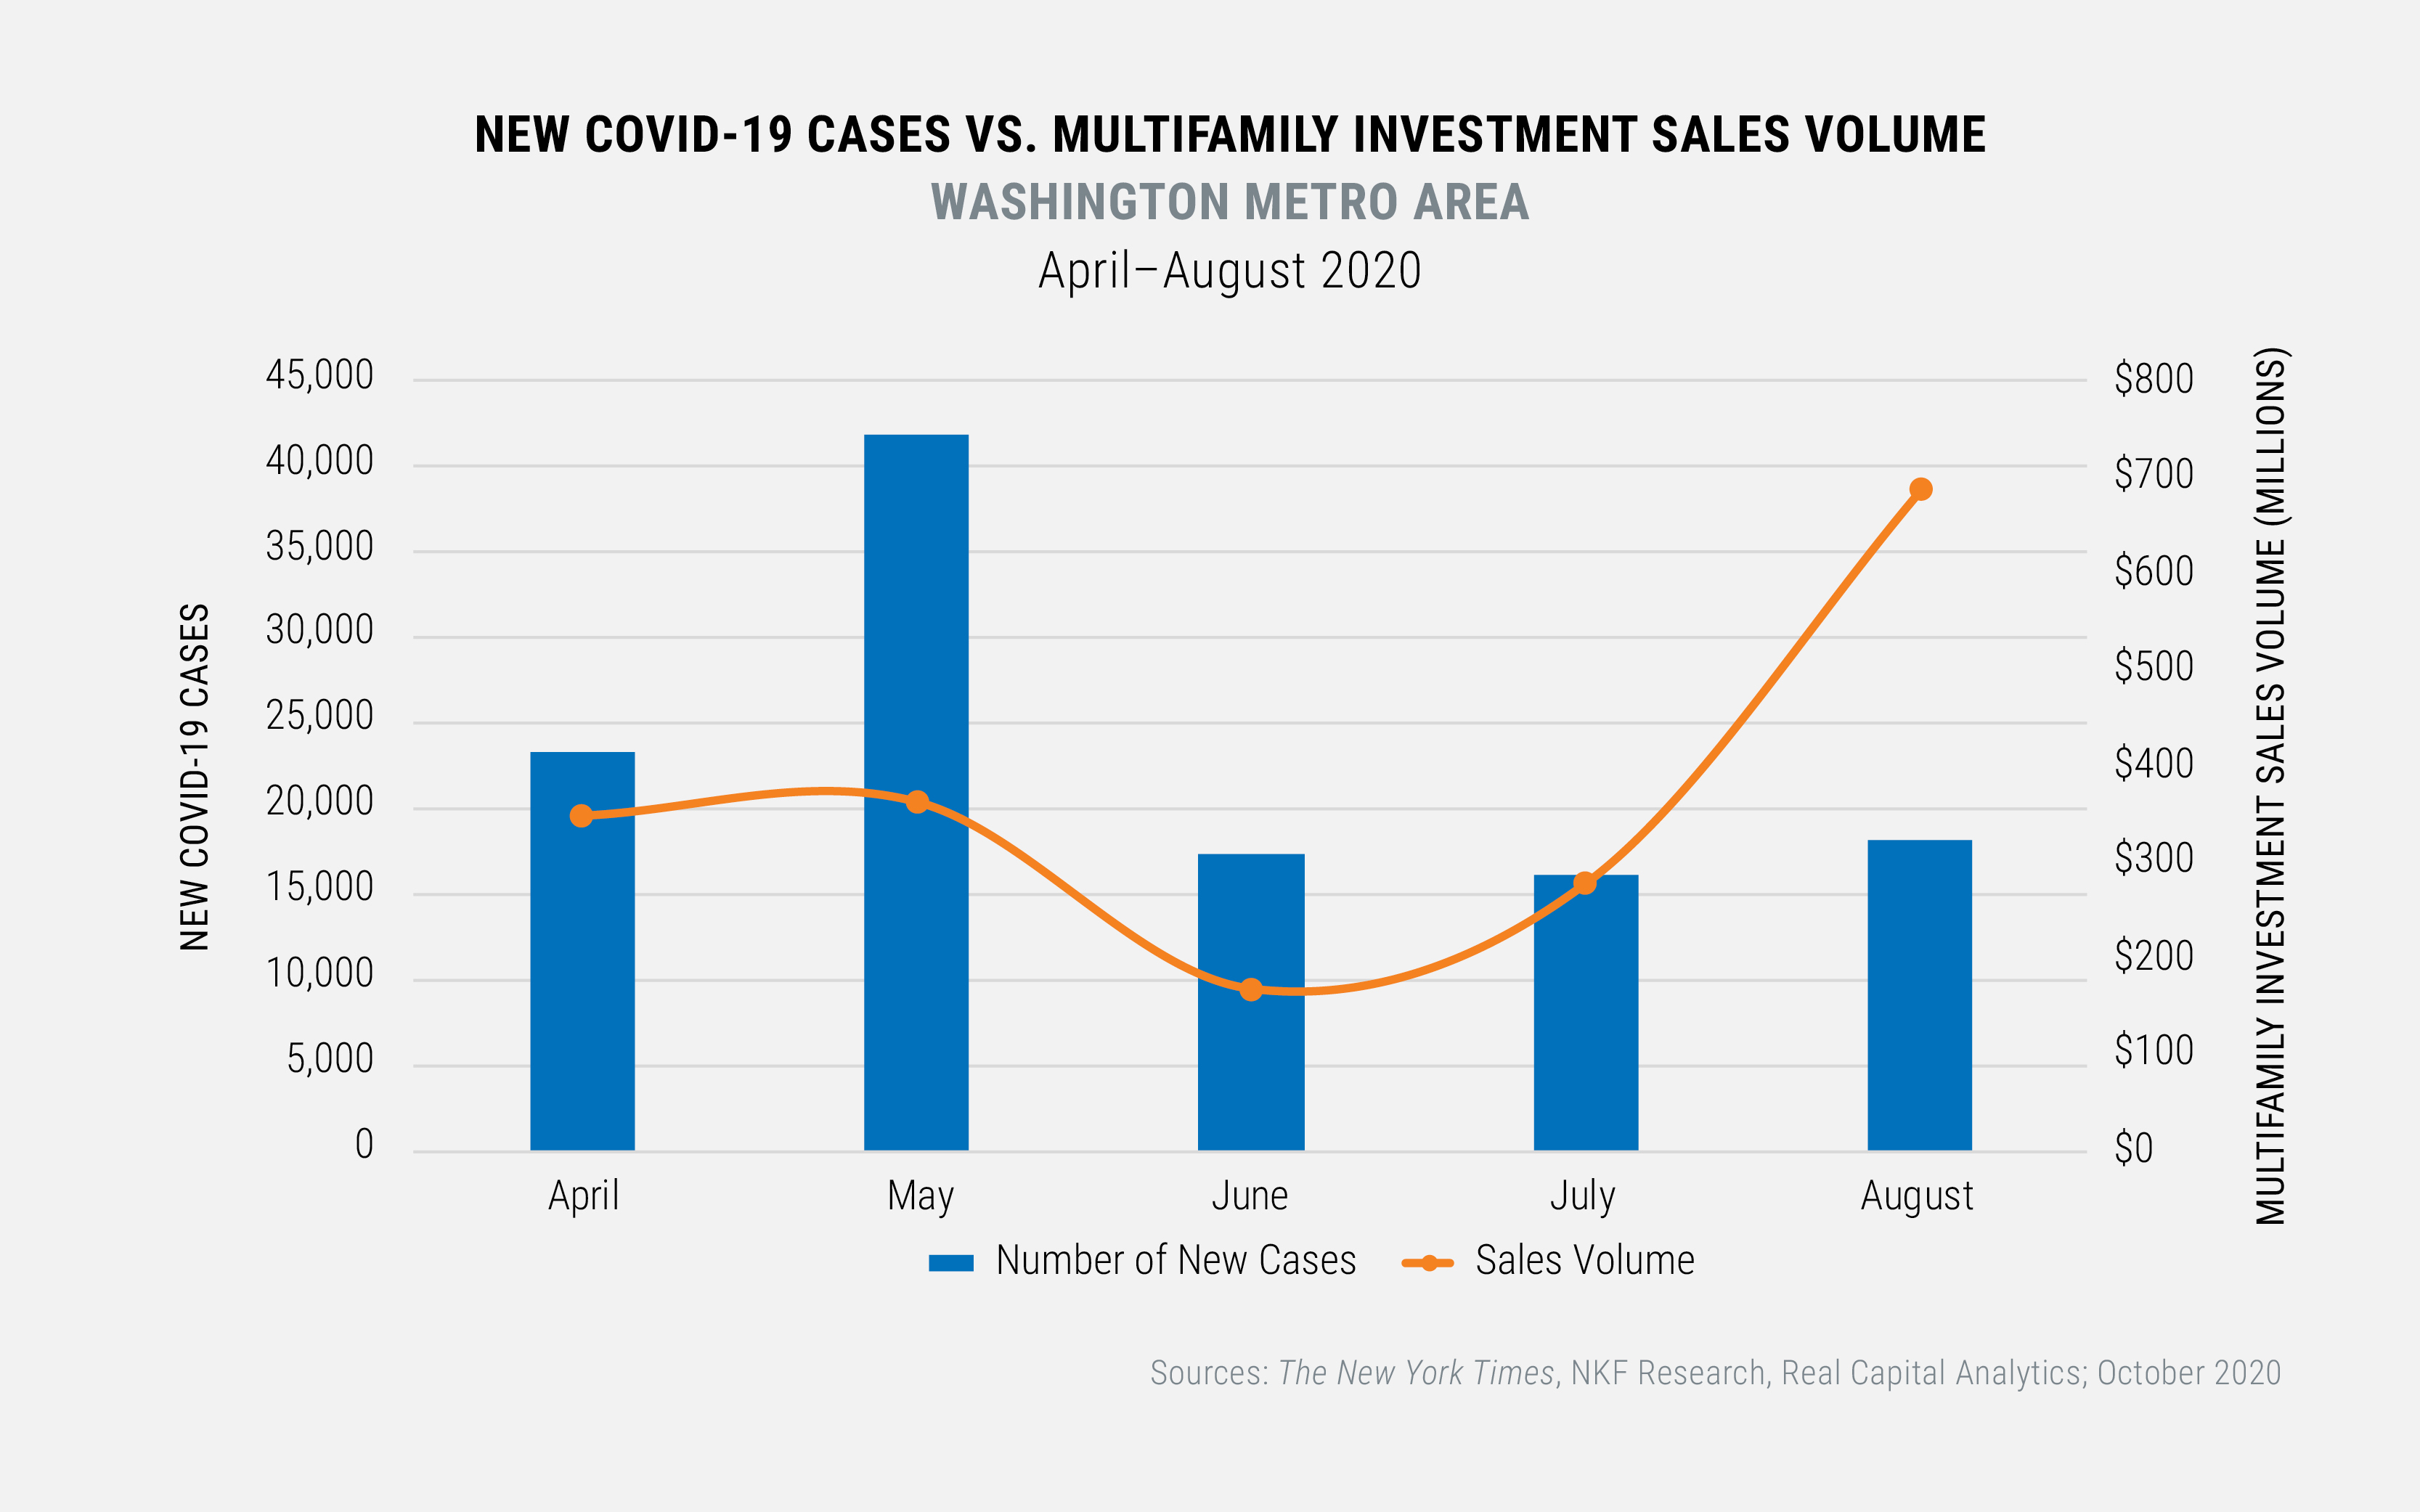 NEW COVID-19 CASES VS. MULTIFAMILY INVESTMENT SALES VOLUME